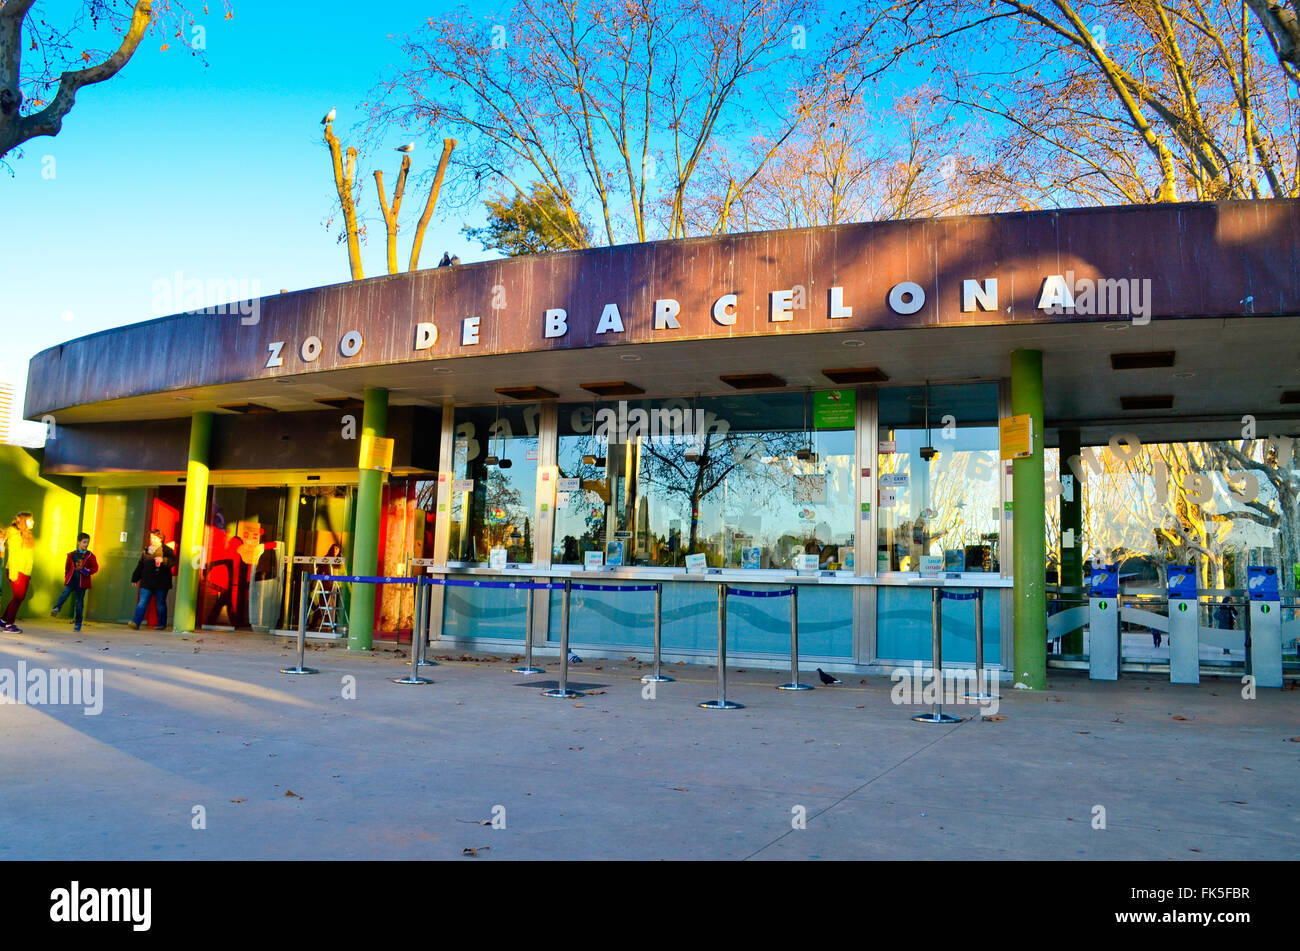 Barcelona Zoo Entrance Spain High Resolution Stock Photography And Images Alamy